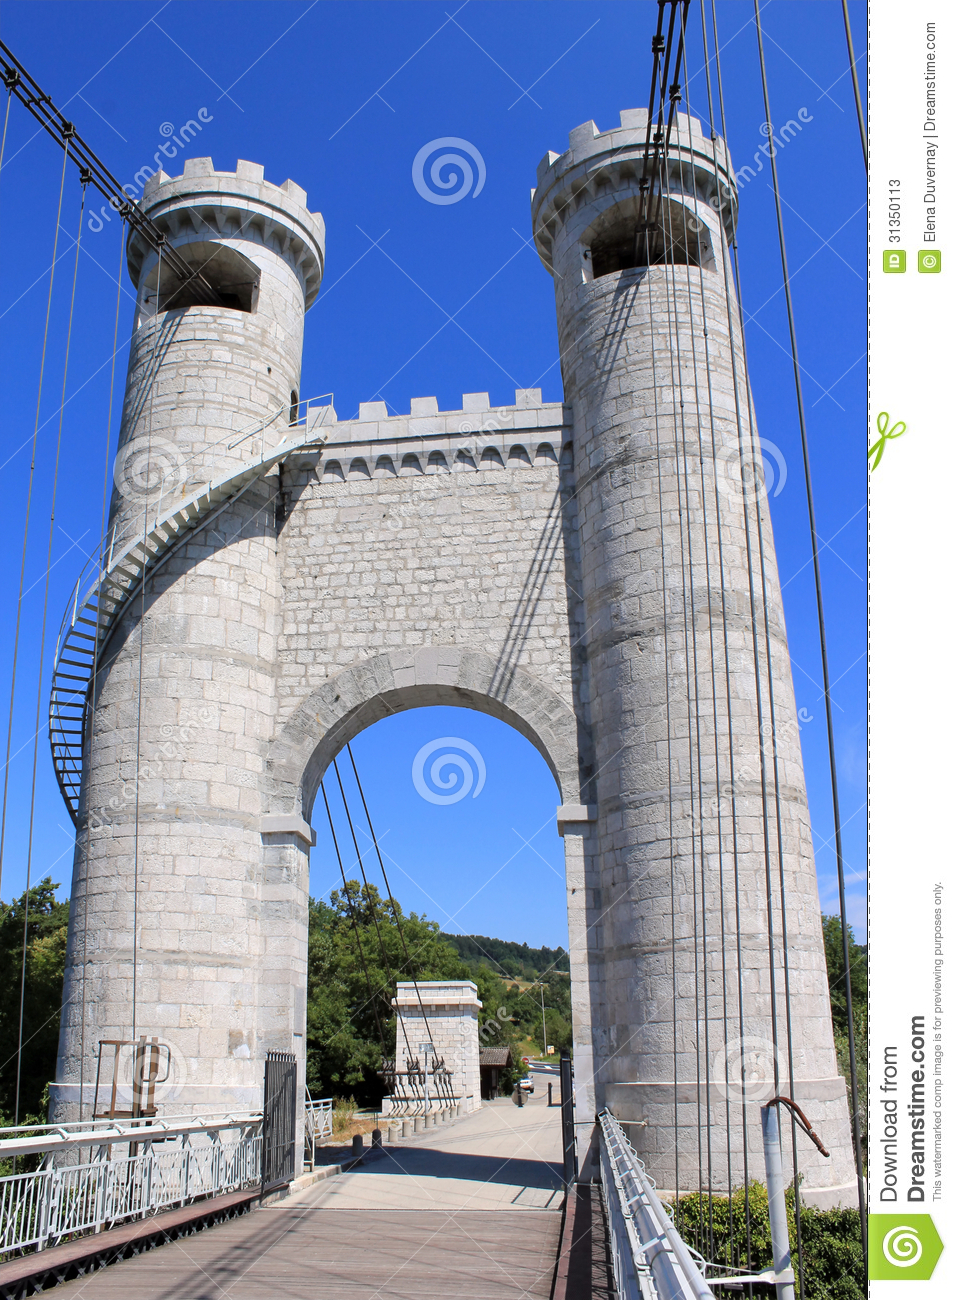 Towers of the bridge of the Caille, France